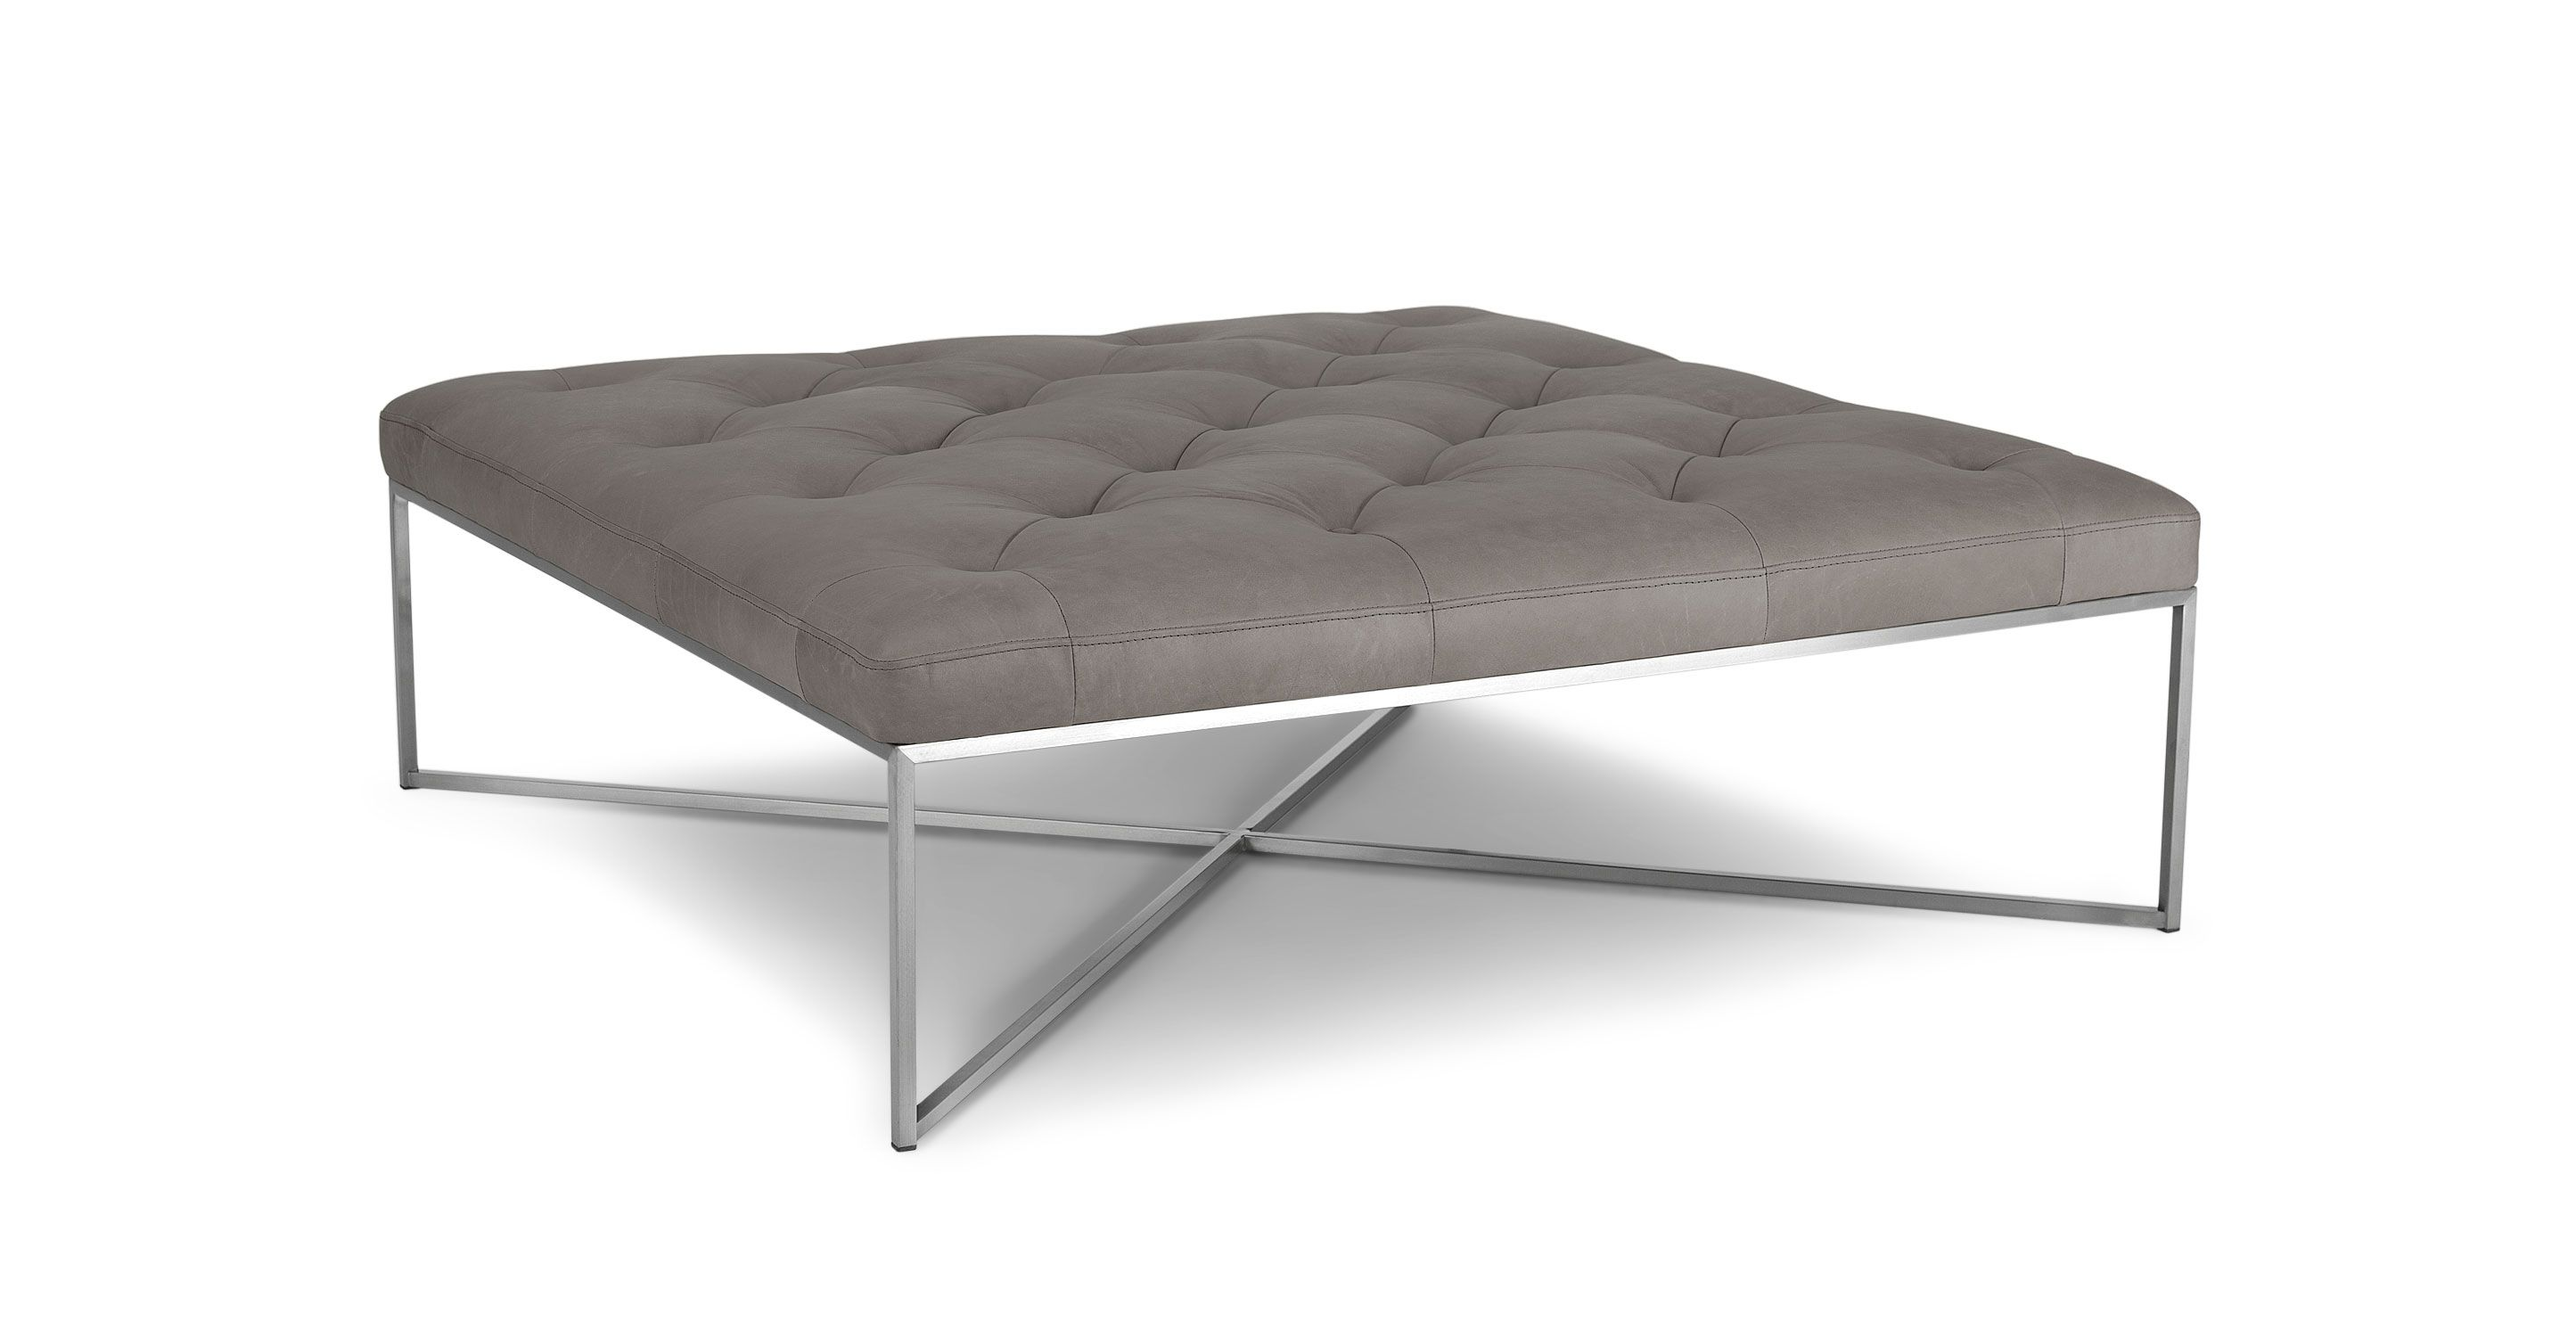 Tablet Lichen Gray Square Ottoman Ottoman Ottoman In Living Room Leather Ottoman Coffee Table [ 1500 x 2890 Pixel ]